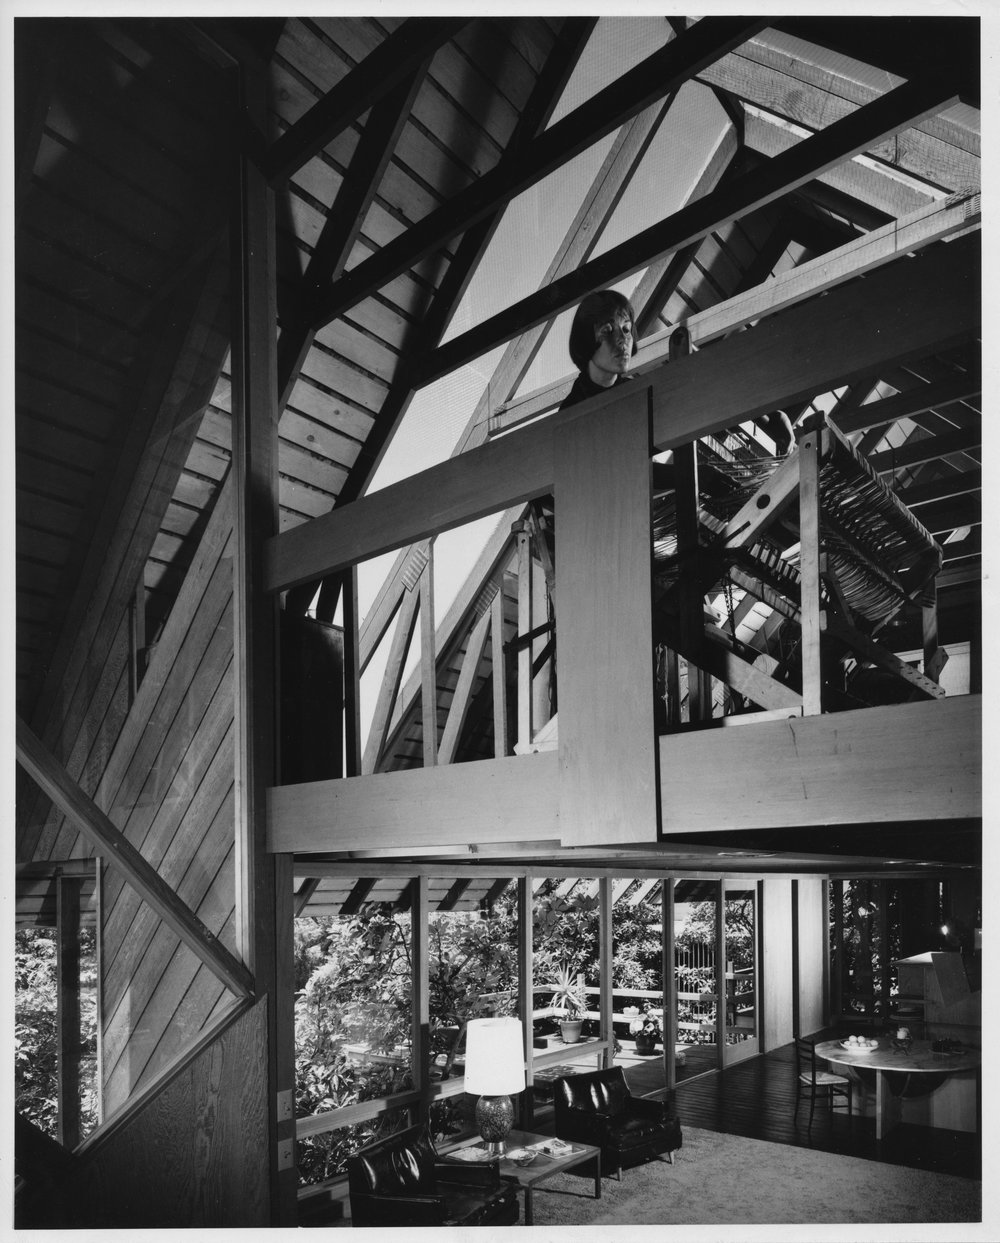 Here you can see my Mom, Jackie, up in the attic truss, in another photo by Julius Shulman.